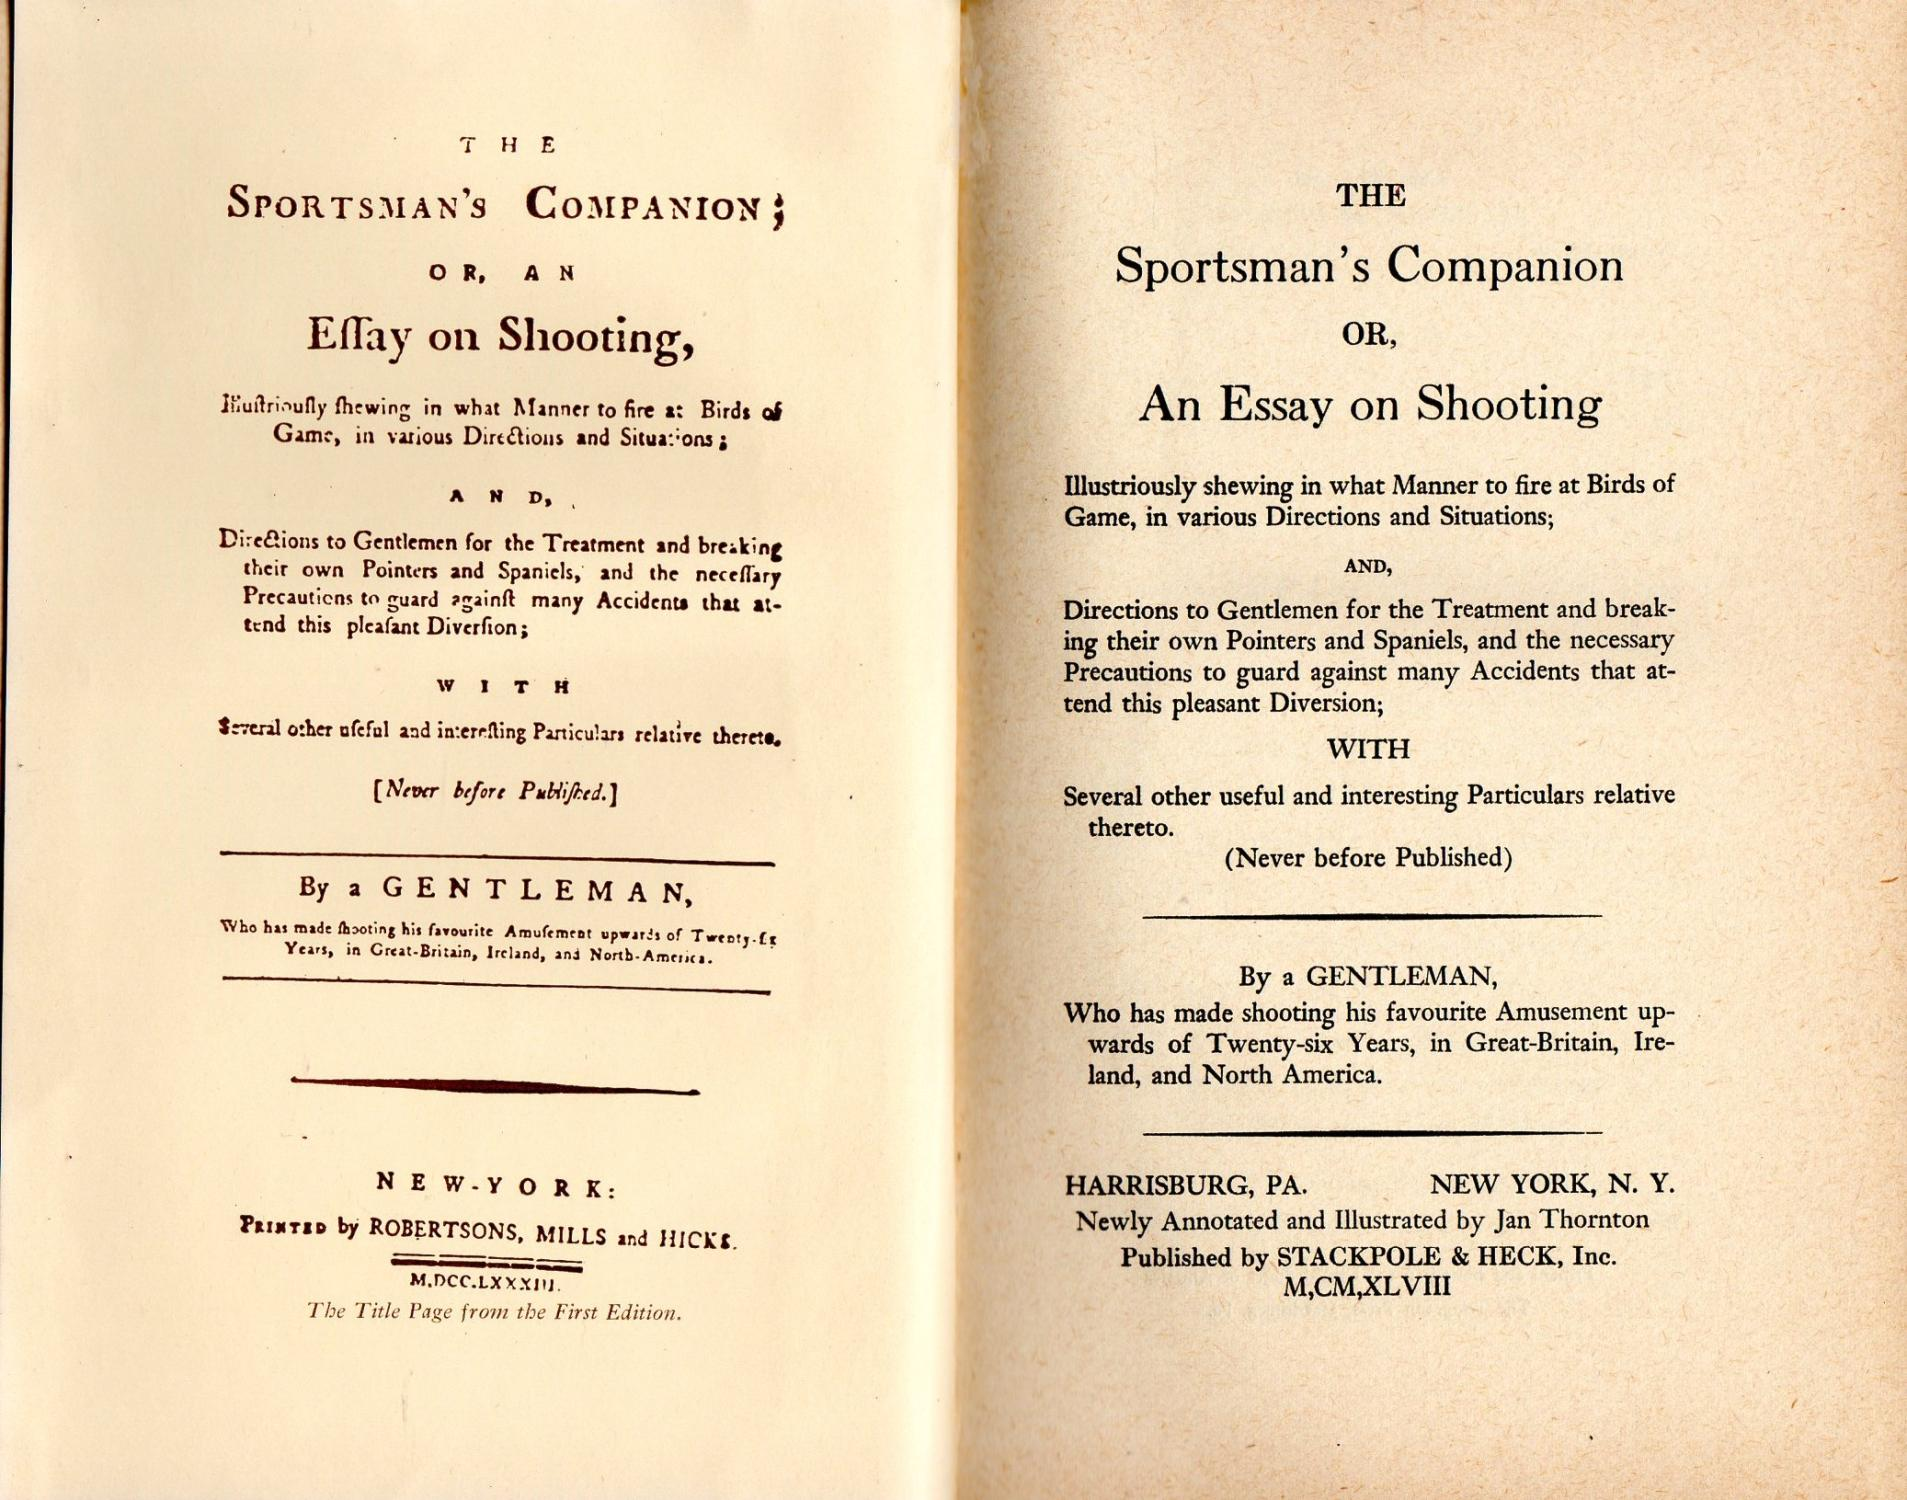 Small Essays In English  The Sportsmans Companion Or An Essay On Shooting By A Gentleman  A Level English Essay also How To Write Proposal Essay The Sportsmans Companion Or An Essay On Shooting By By A Gentleman  How To Start A Proposal Essay